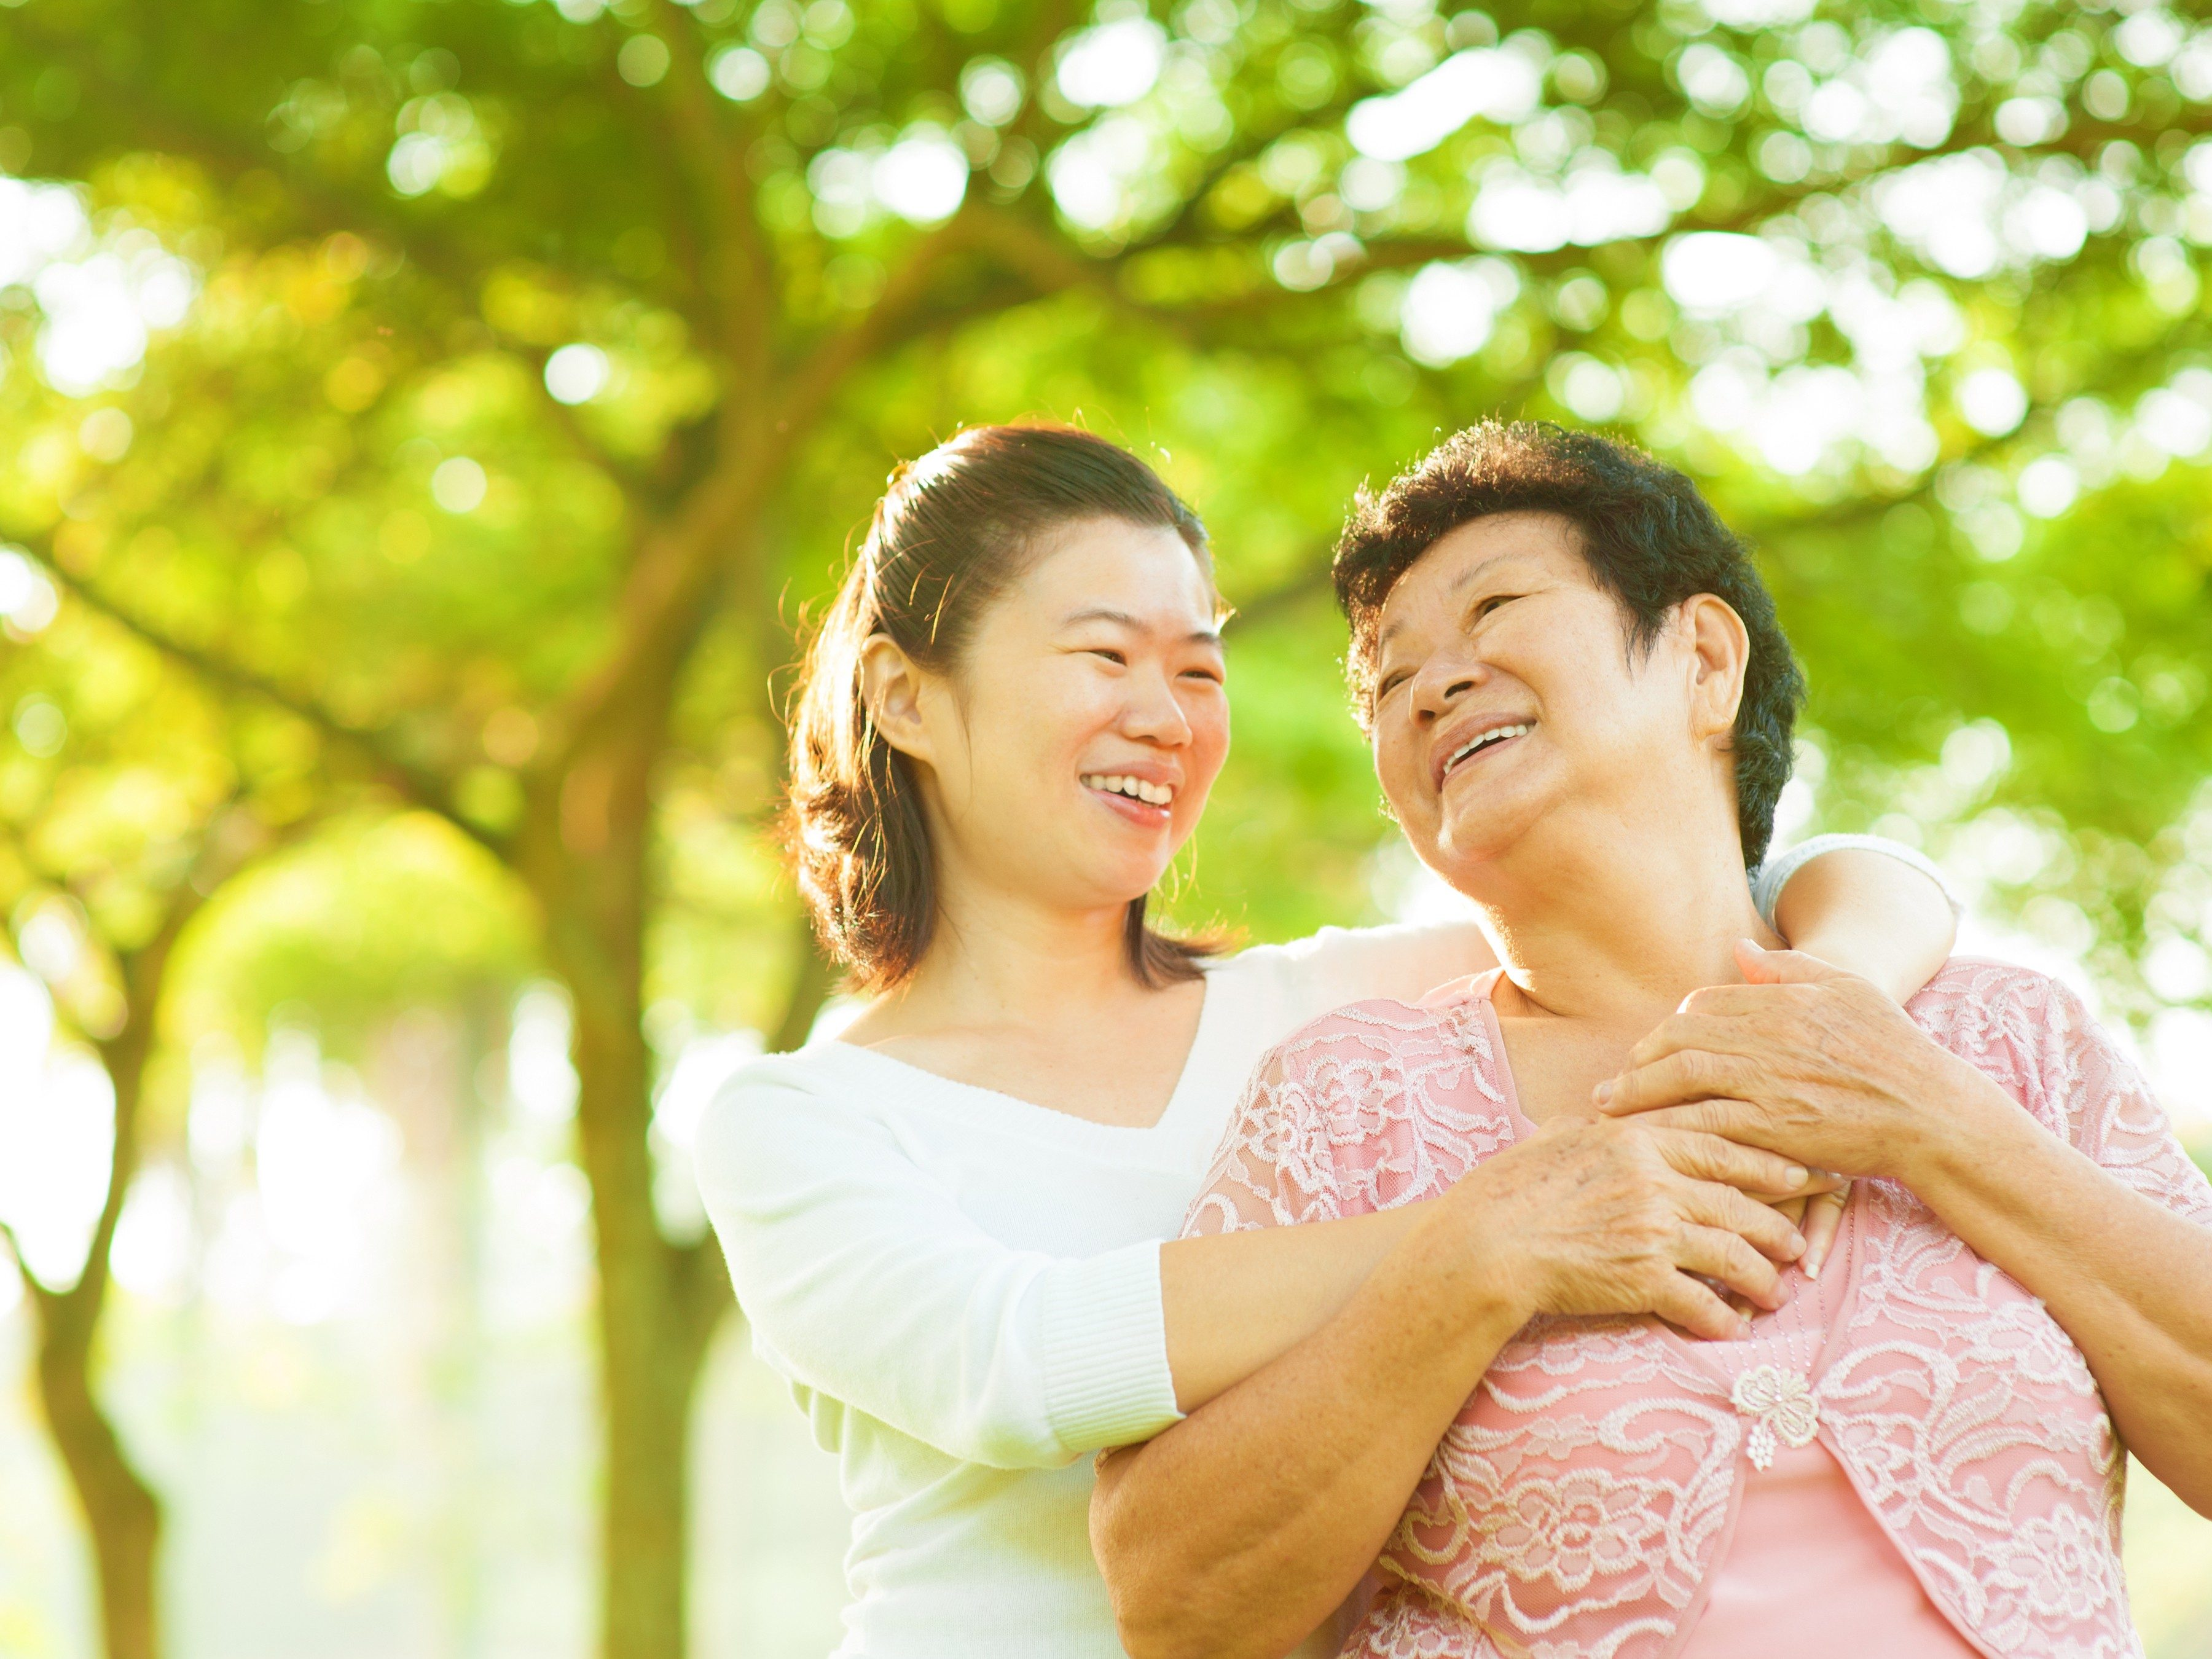 1. Make a plan for senior care before it becomes an issue.